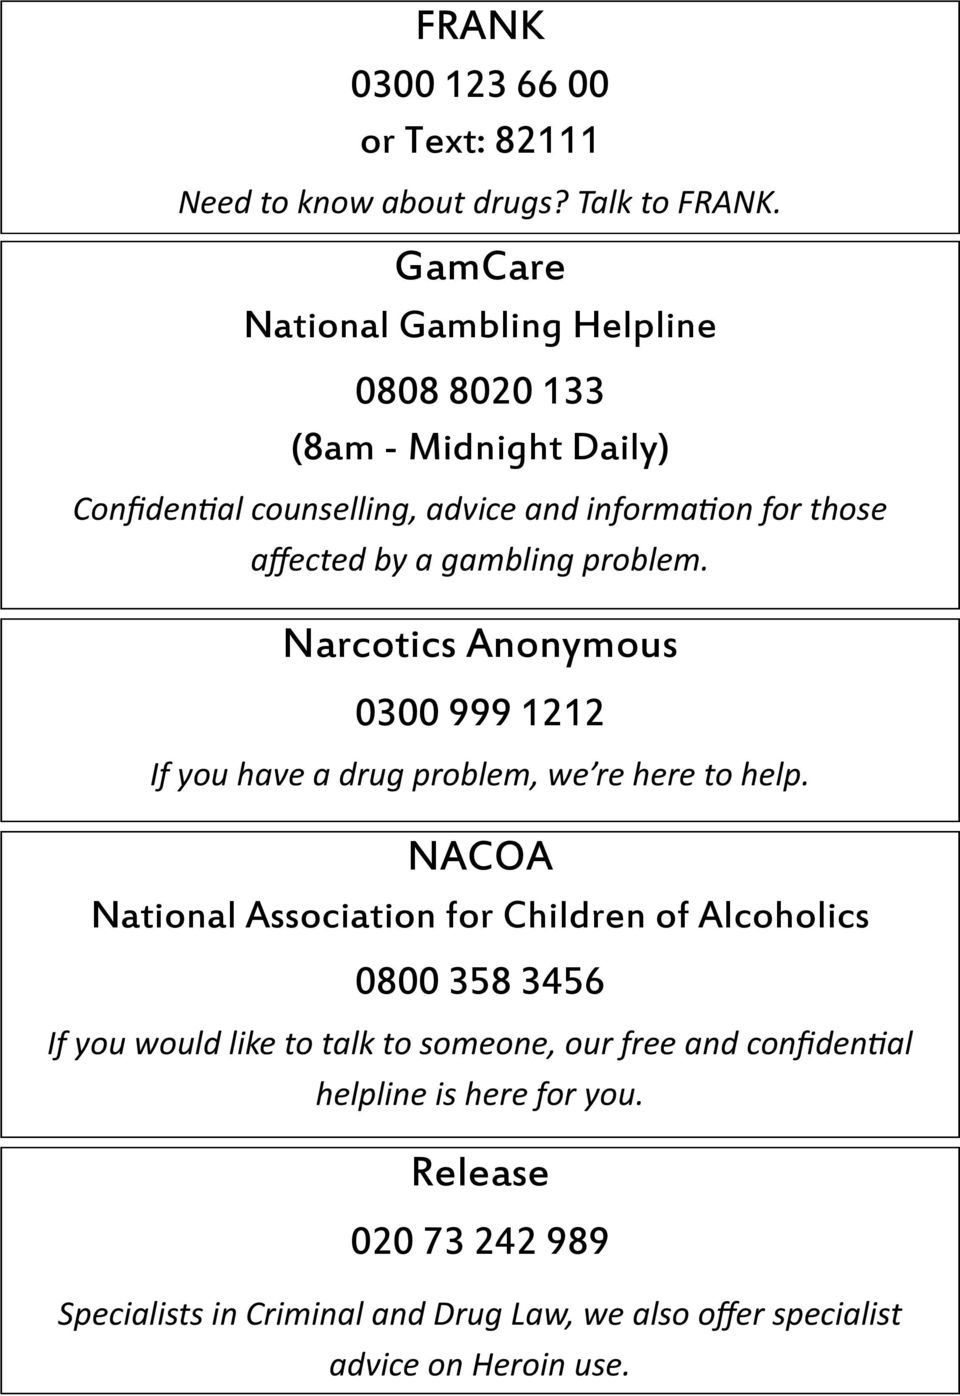 gambling problem. Narcotics Anonymous 0300 999 1212 If you have a drug problem, we re here to help.